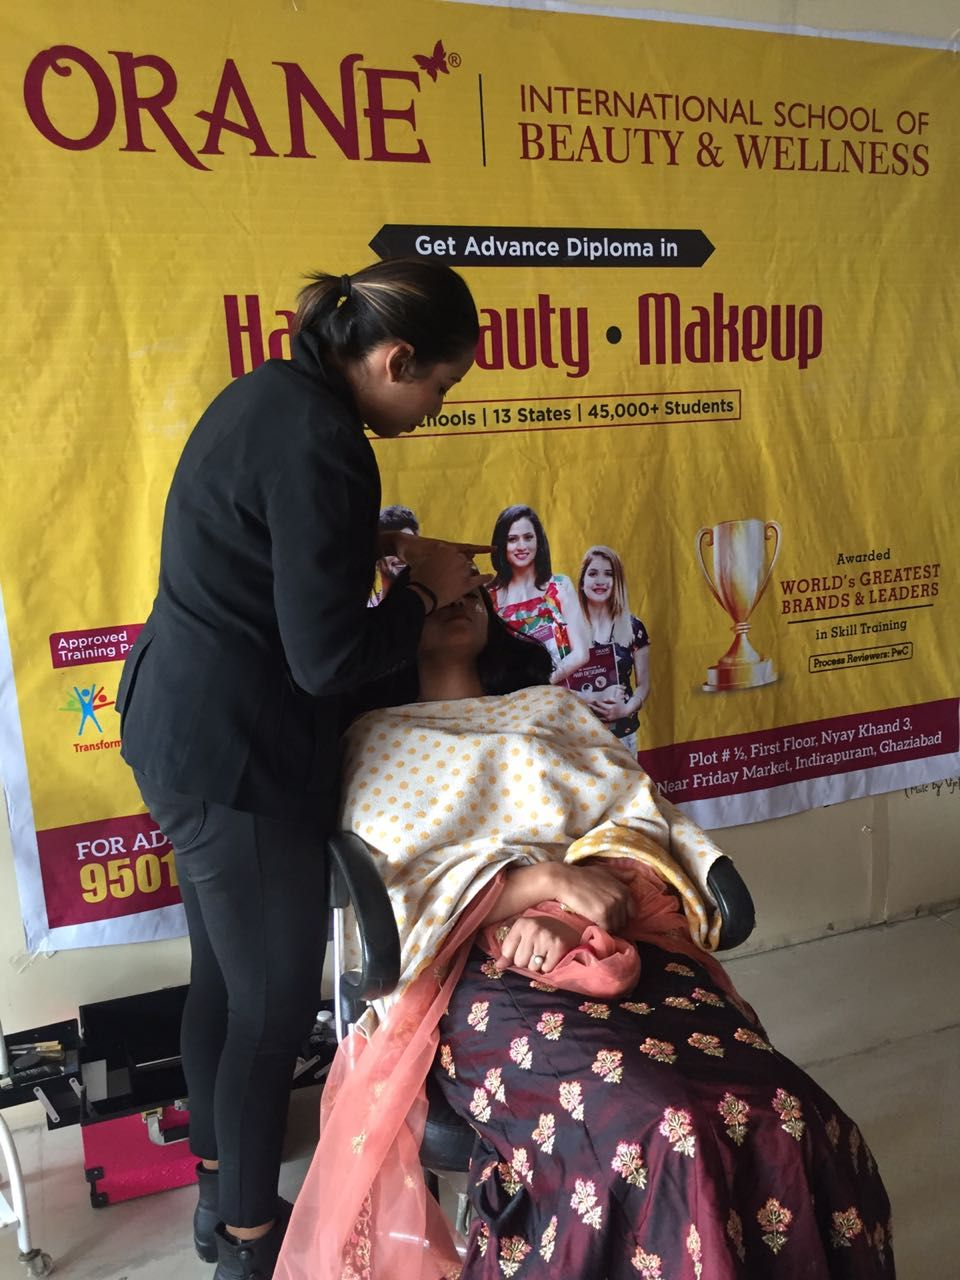 Makeup Courses in Ghaziabad with Orane International